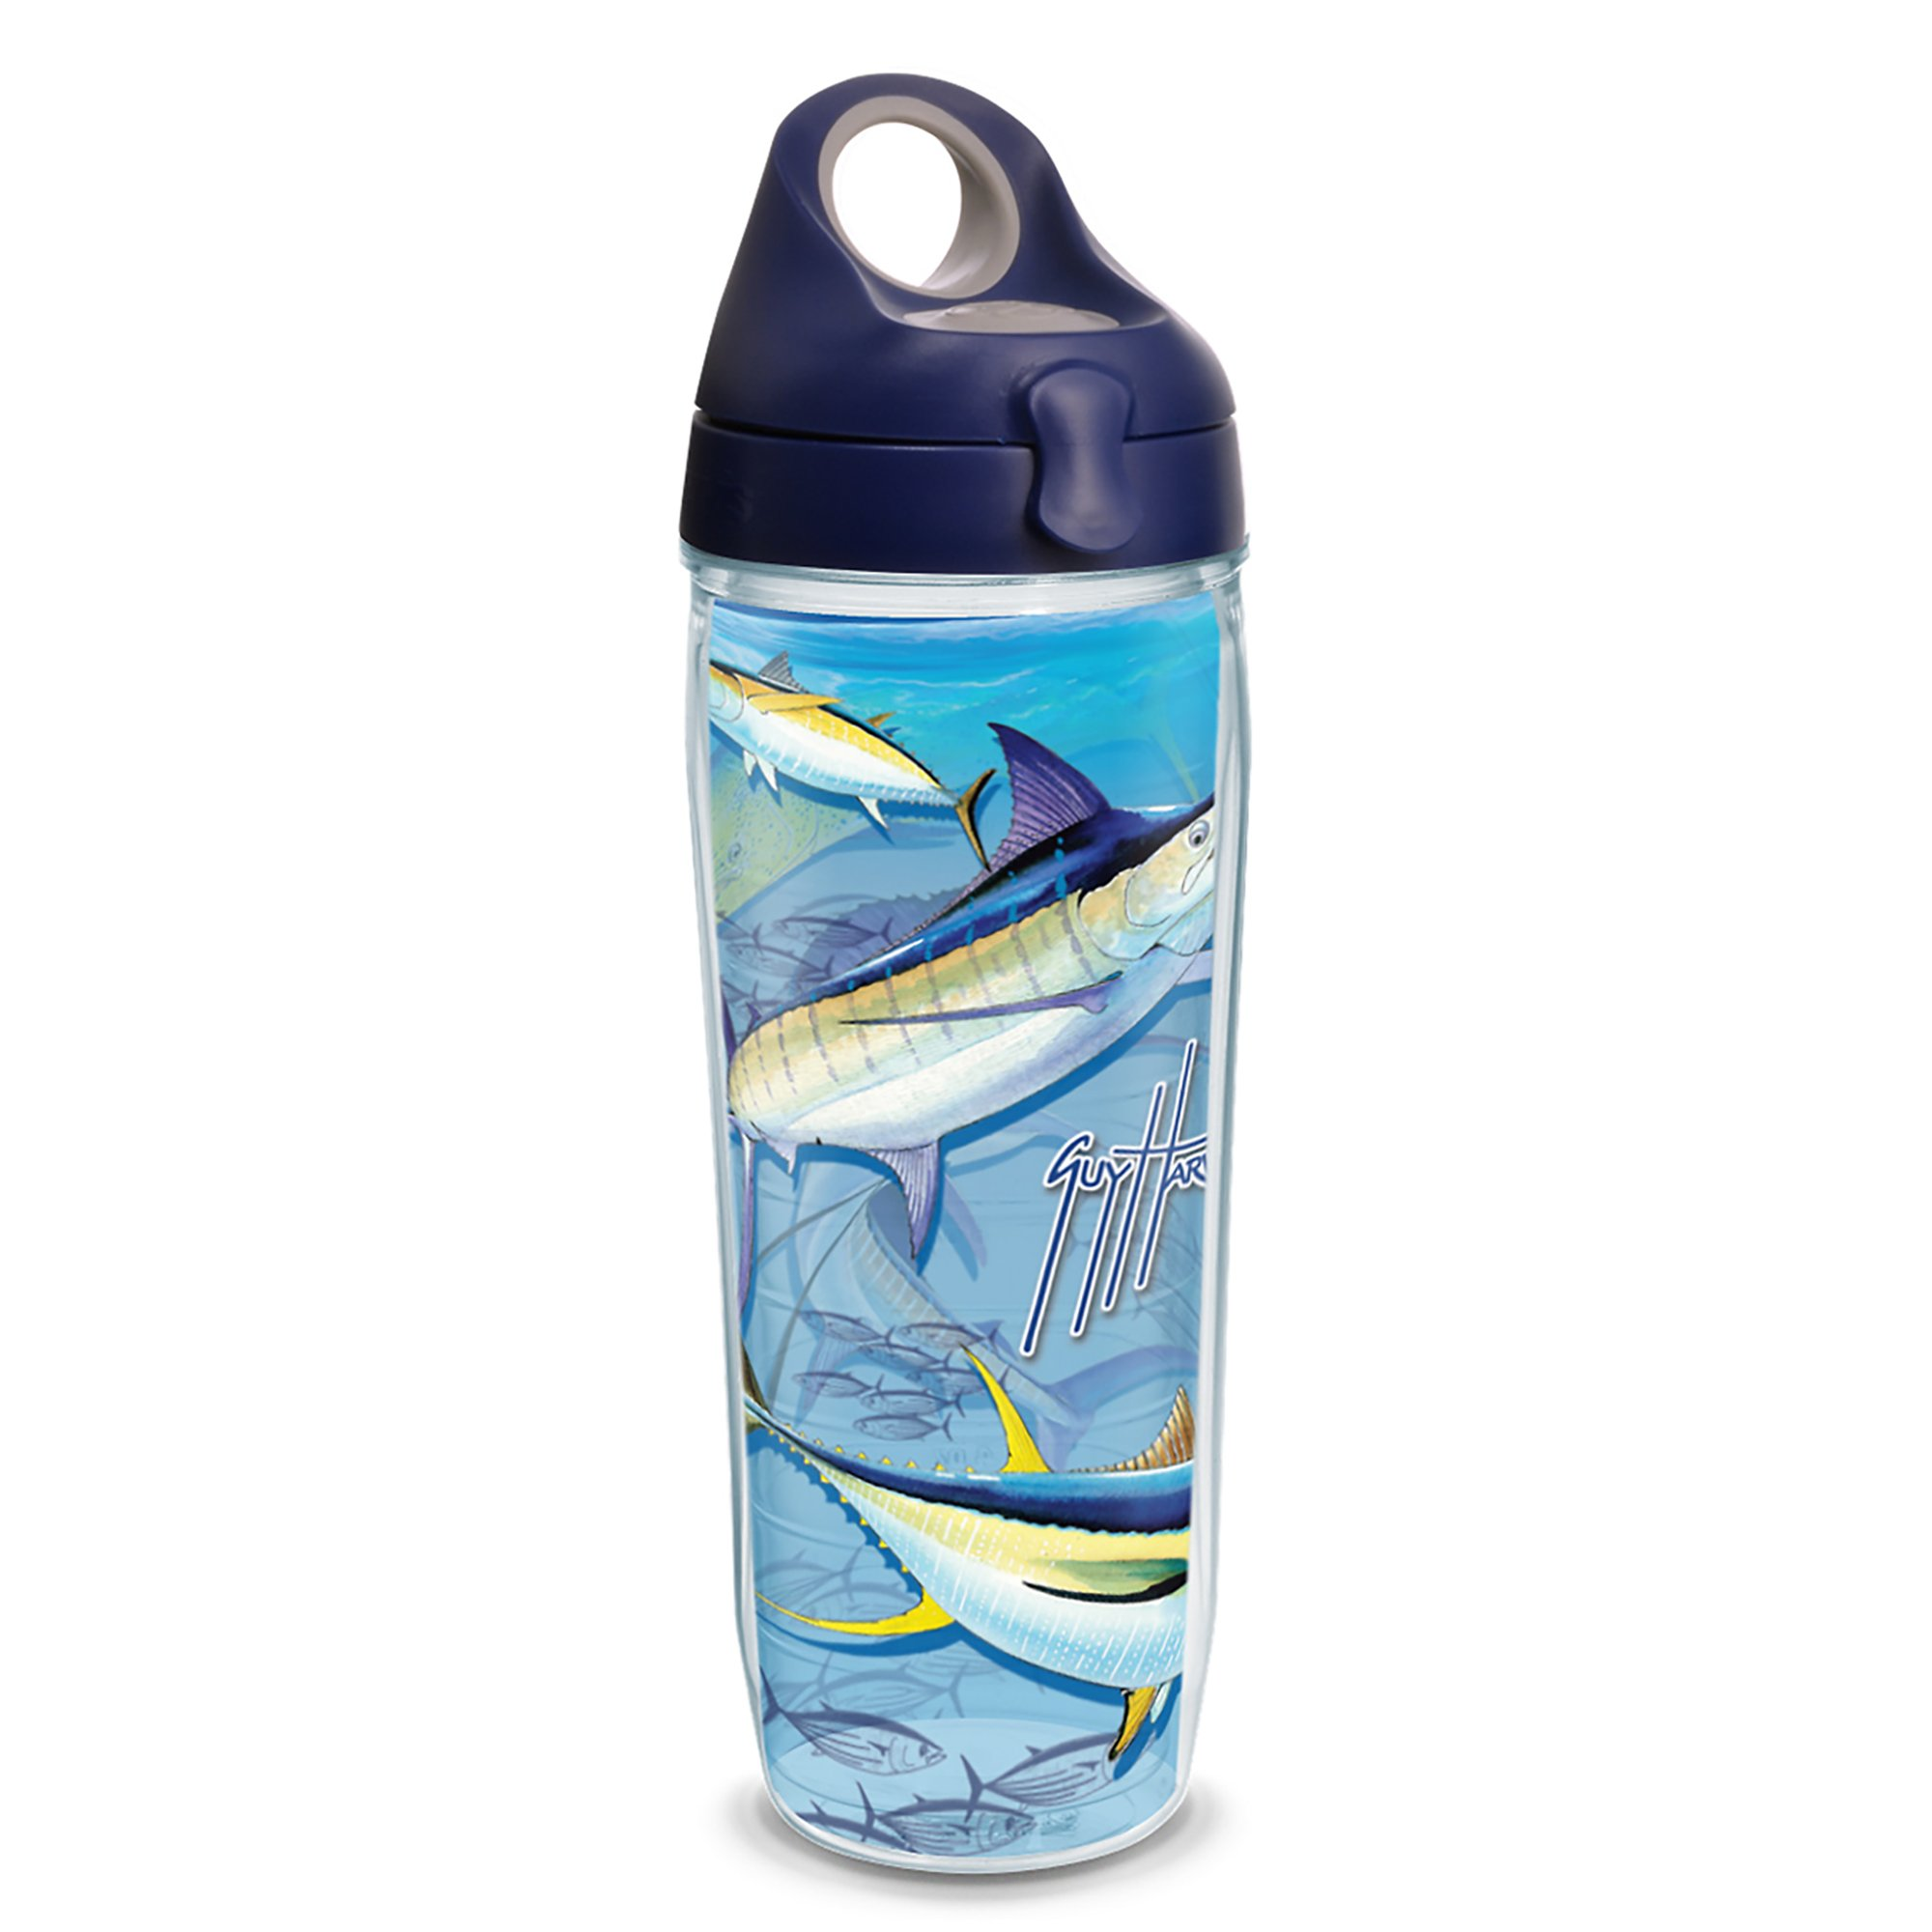 Tervis 1230772 Guy Harvey - Big Game Tumbler with Wrap and Navy with Gray Lid 24oz Water Bottle, Clear